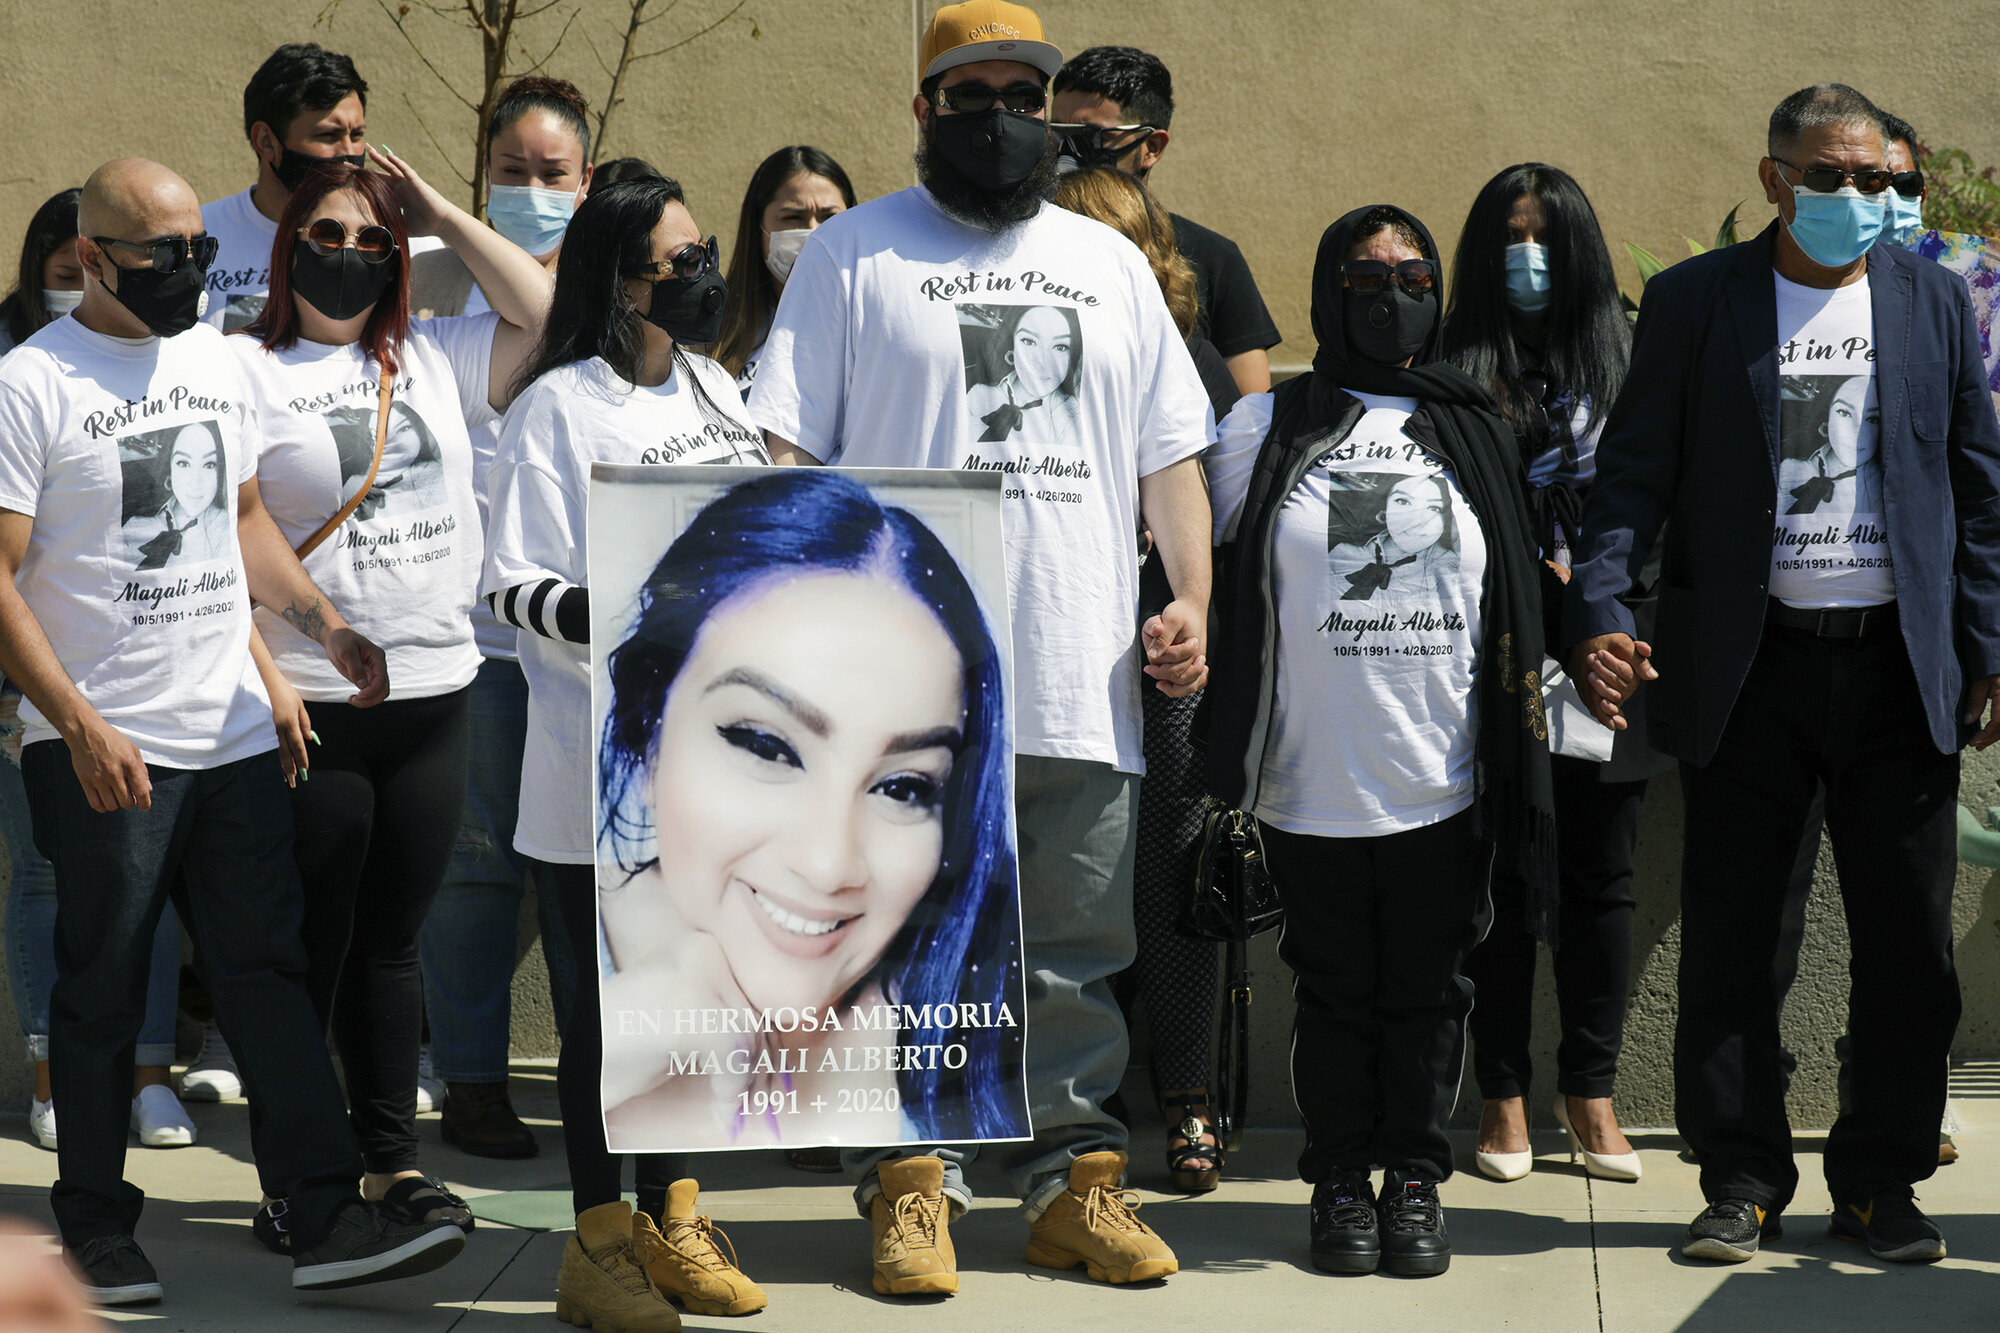 Family members of Magali Alberto, who was shot and killed at a traffic light, at a press conference held by the Los Angeles Police Department on May 28, 2020.